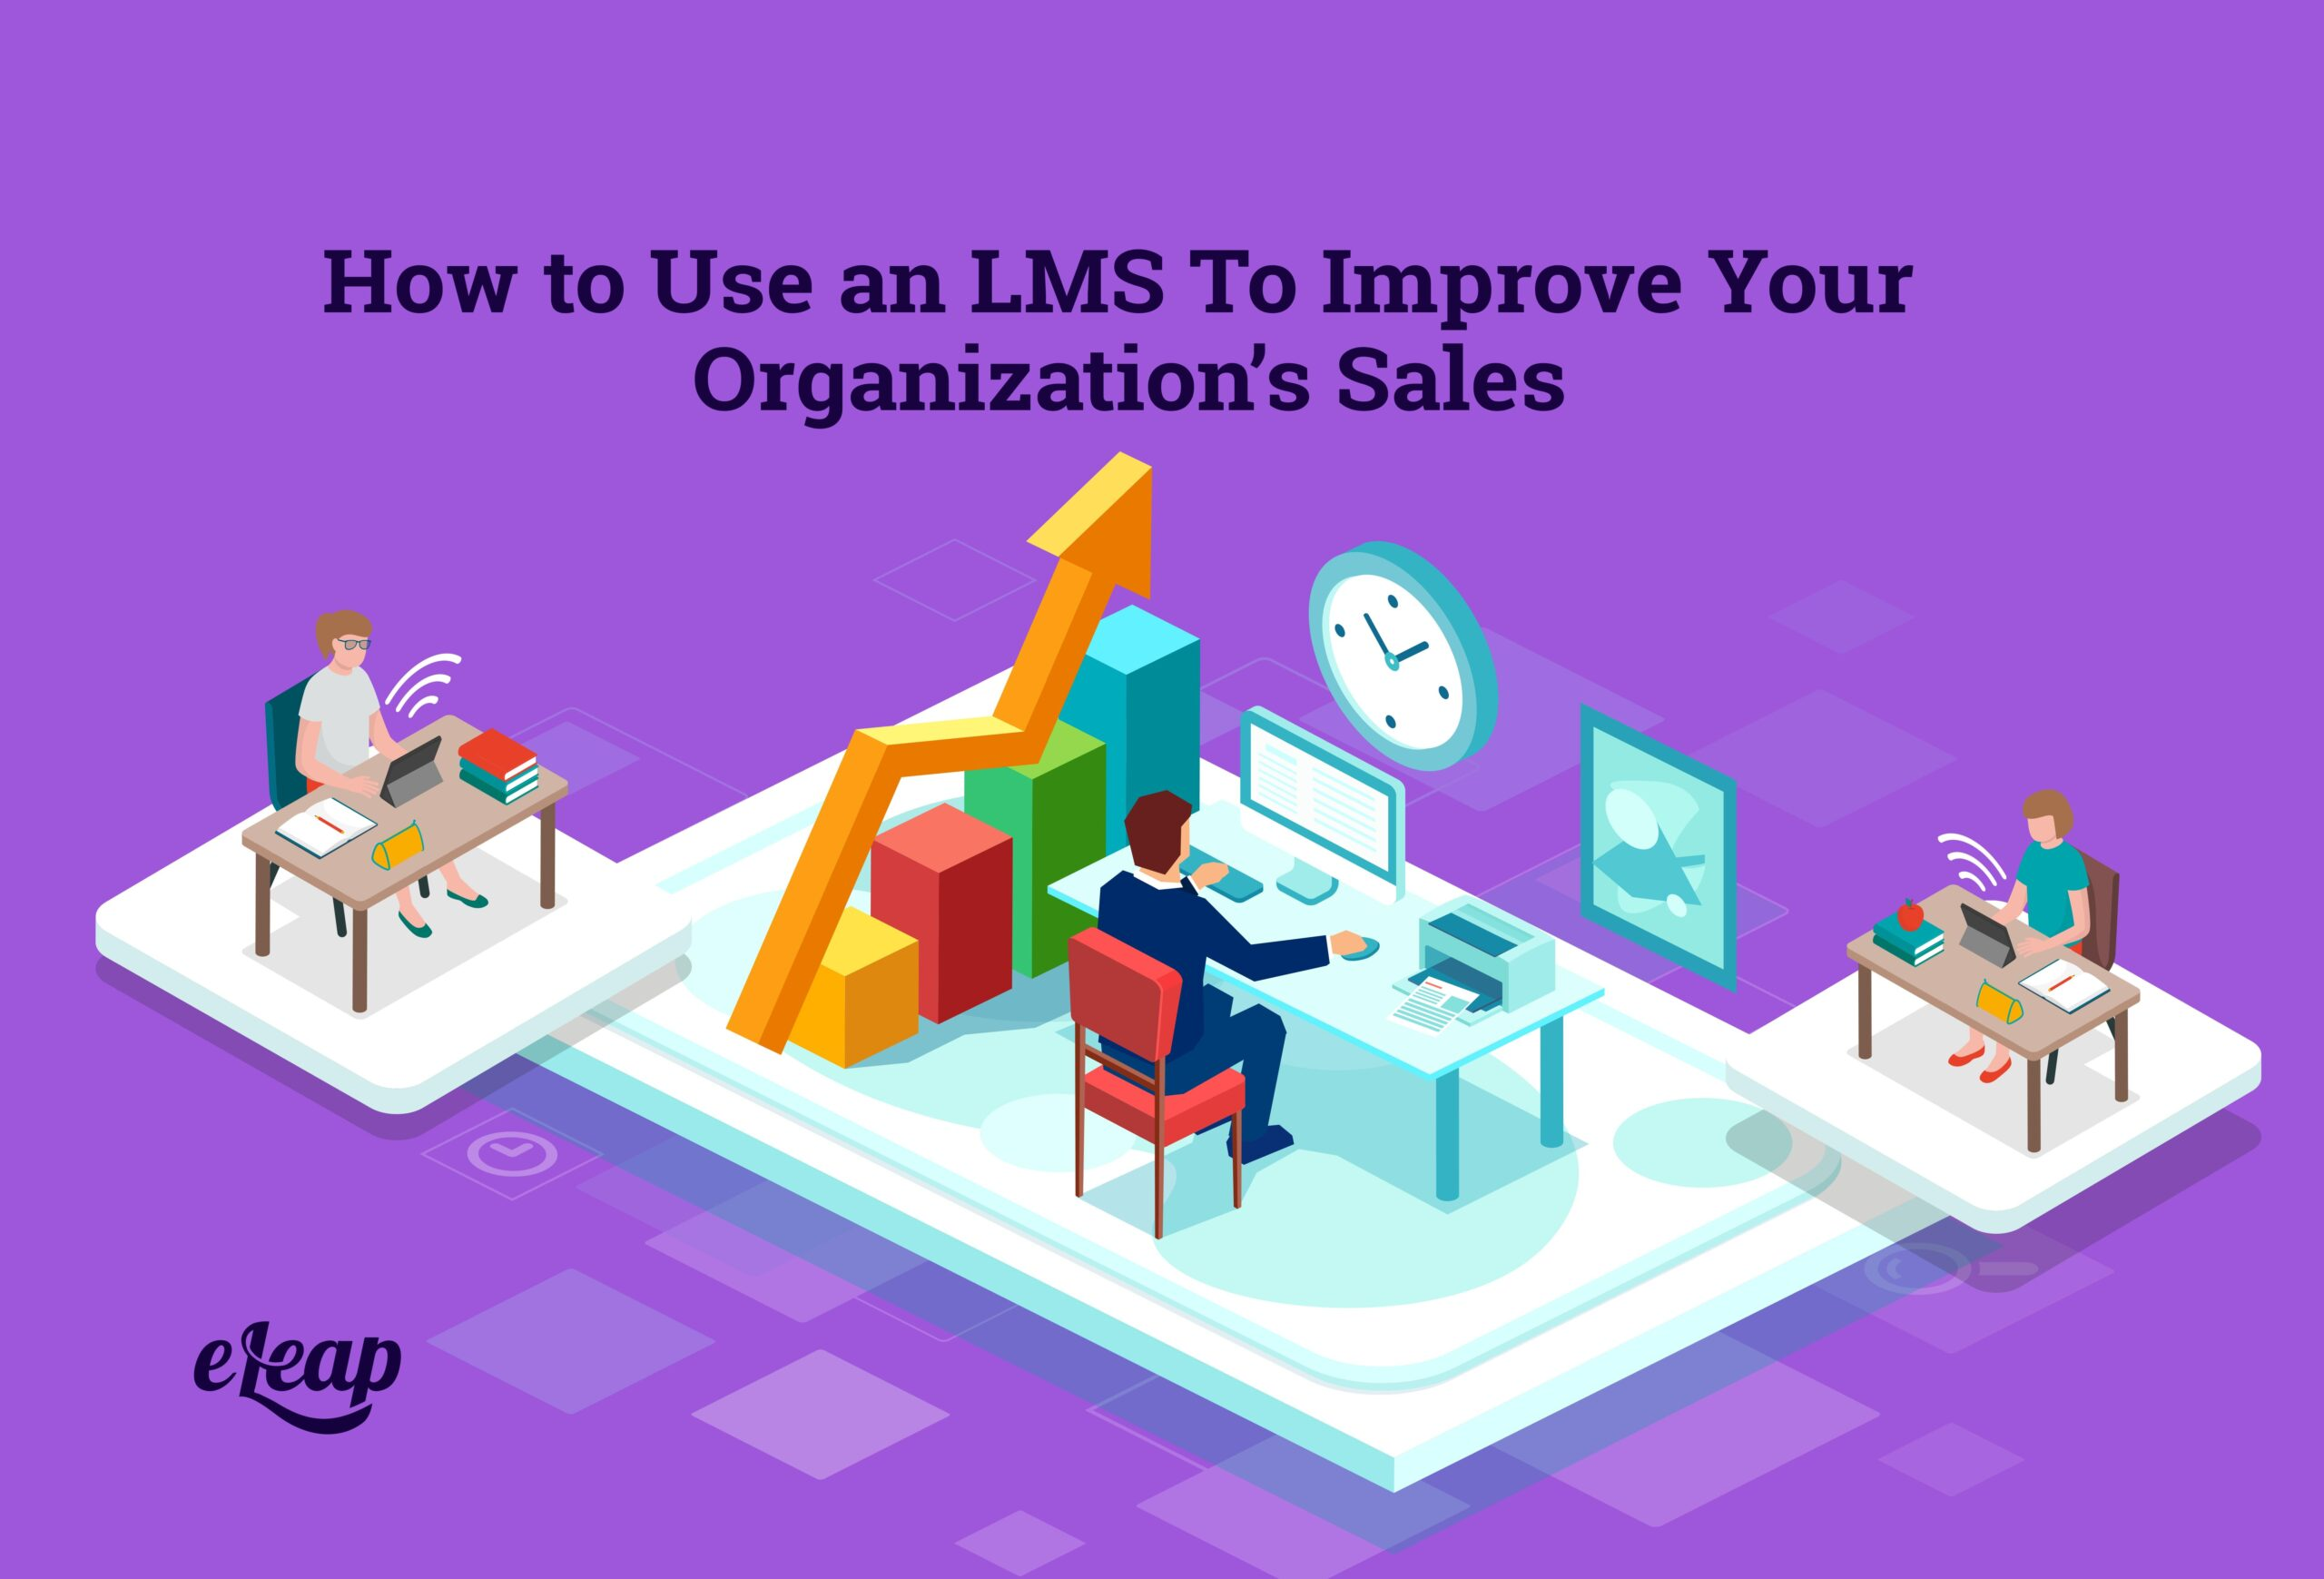 How to Use an LMS To Improve Your Organization's Sales